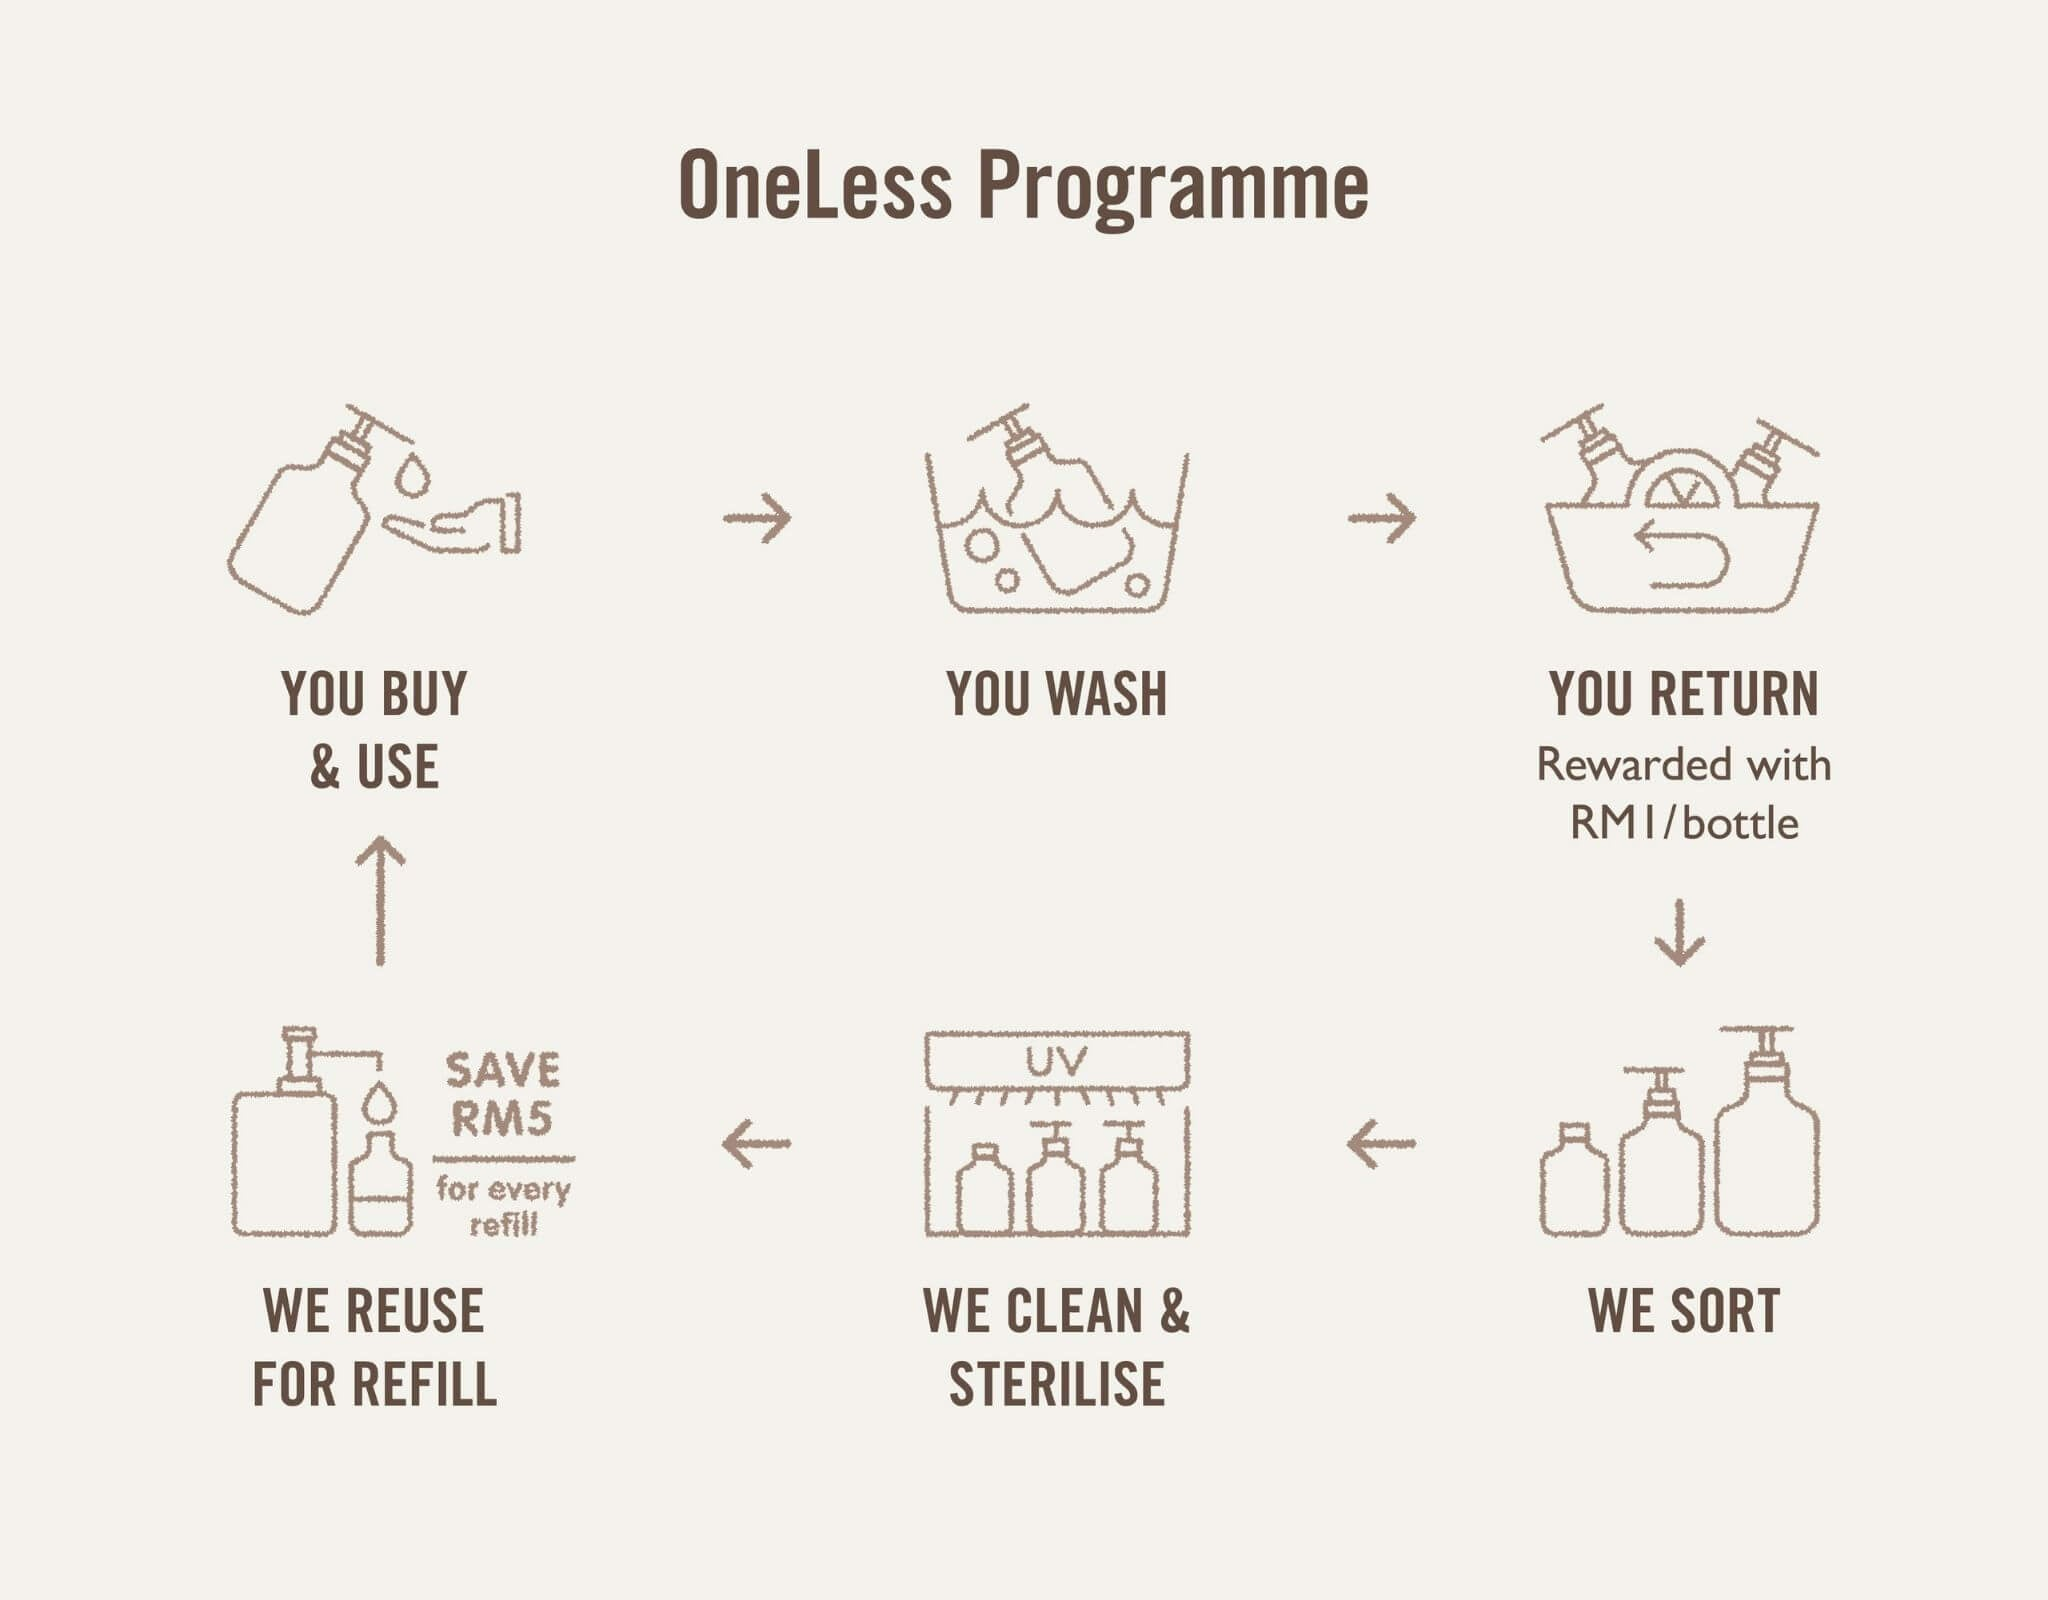 The Olive Tree OneLess Programme Reuse Refill Recycle Plastic Bottles